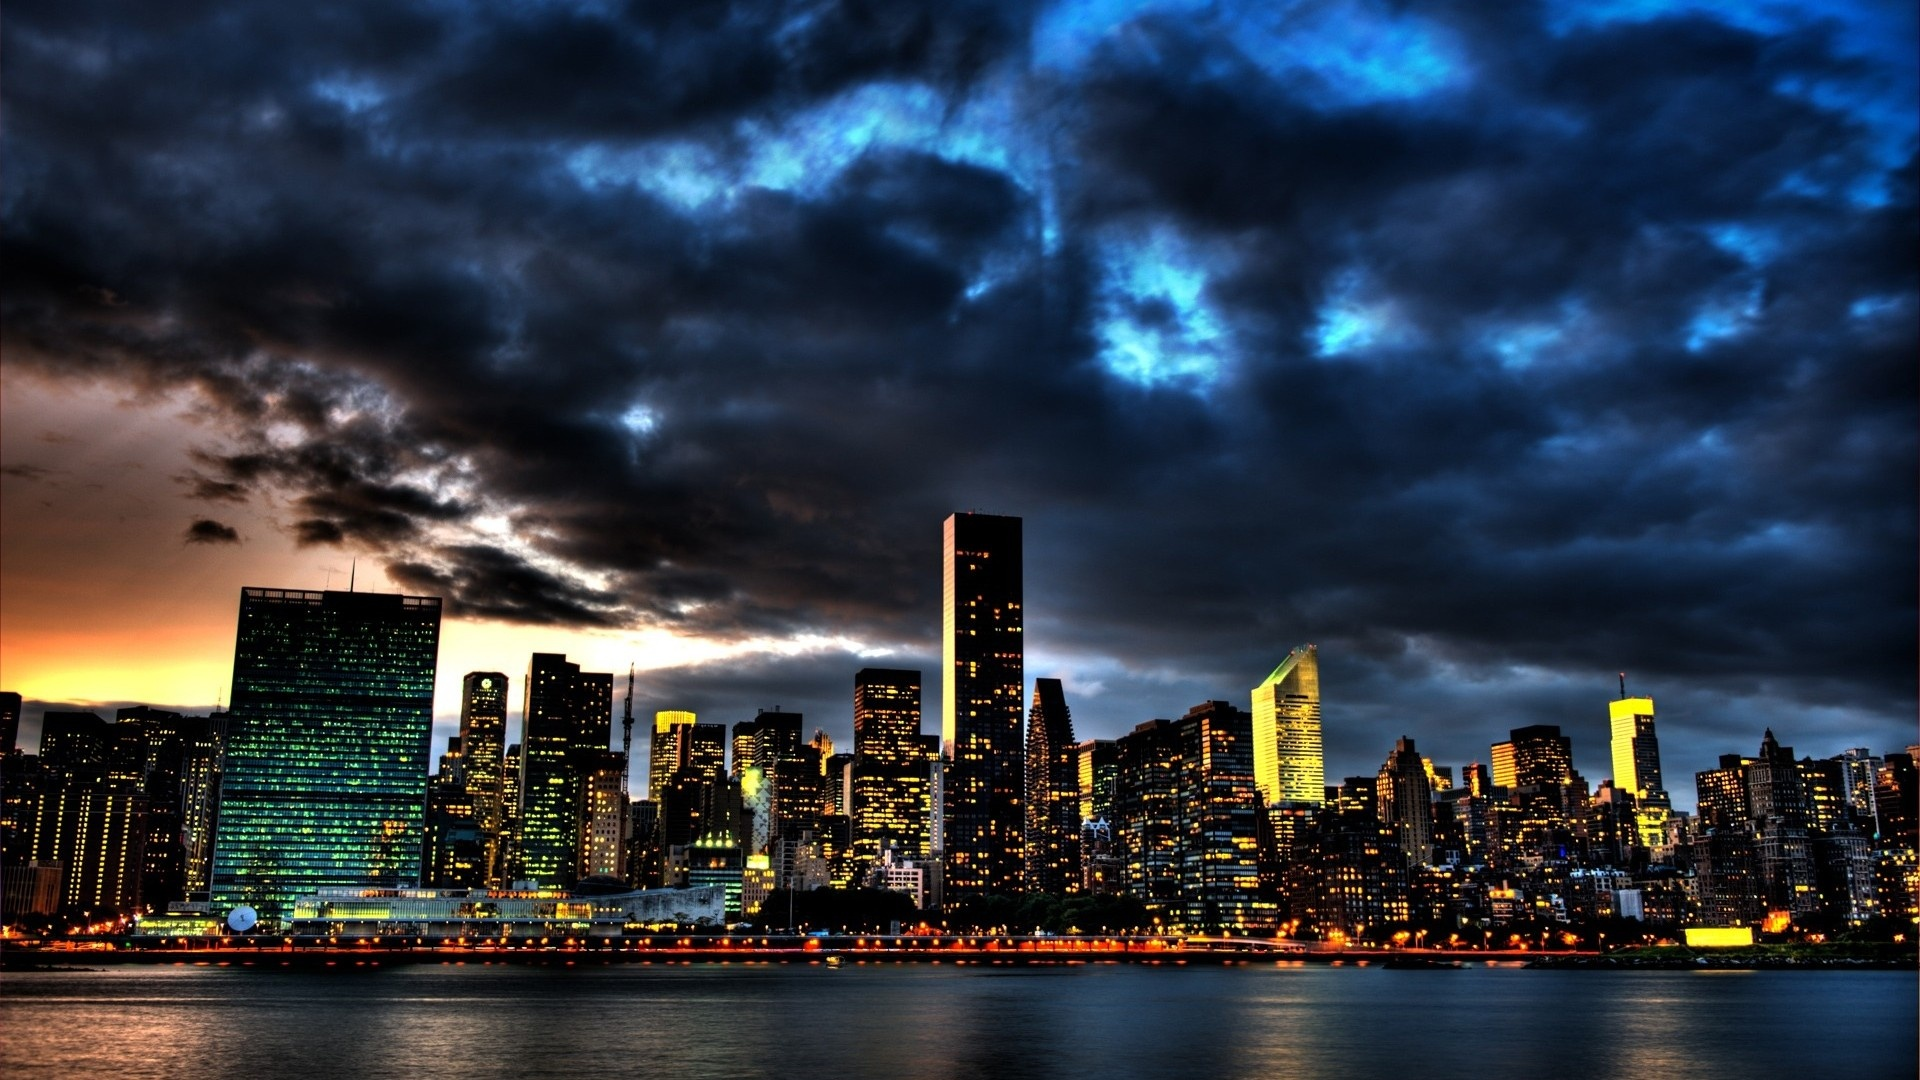 Hdr Wallpaper Rooms: Hdr Wallpaper Wallpapers Naturen Flag Next New York 1920x1080px